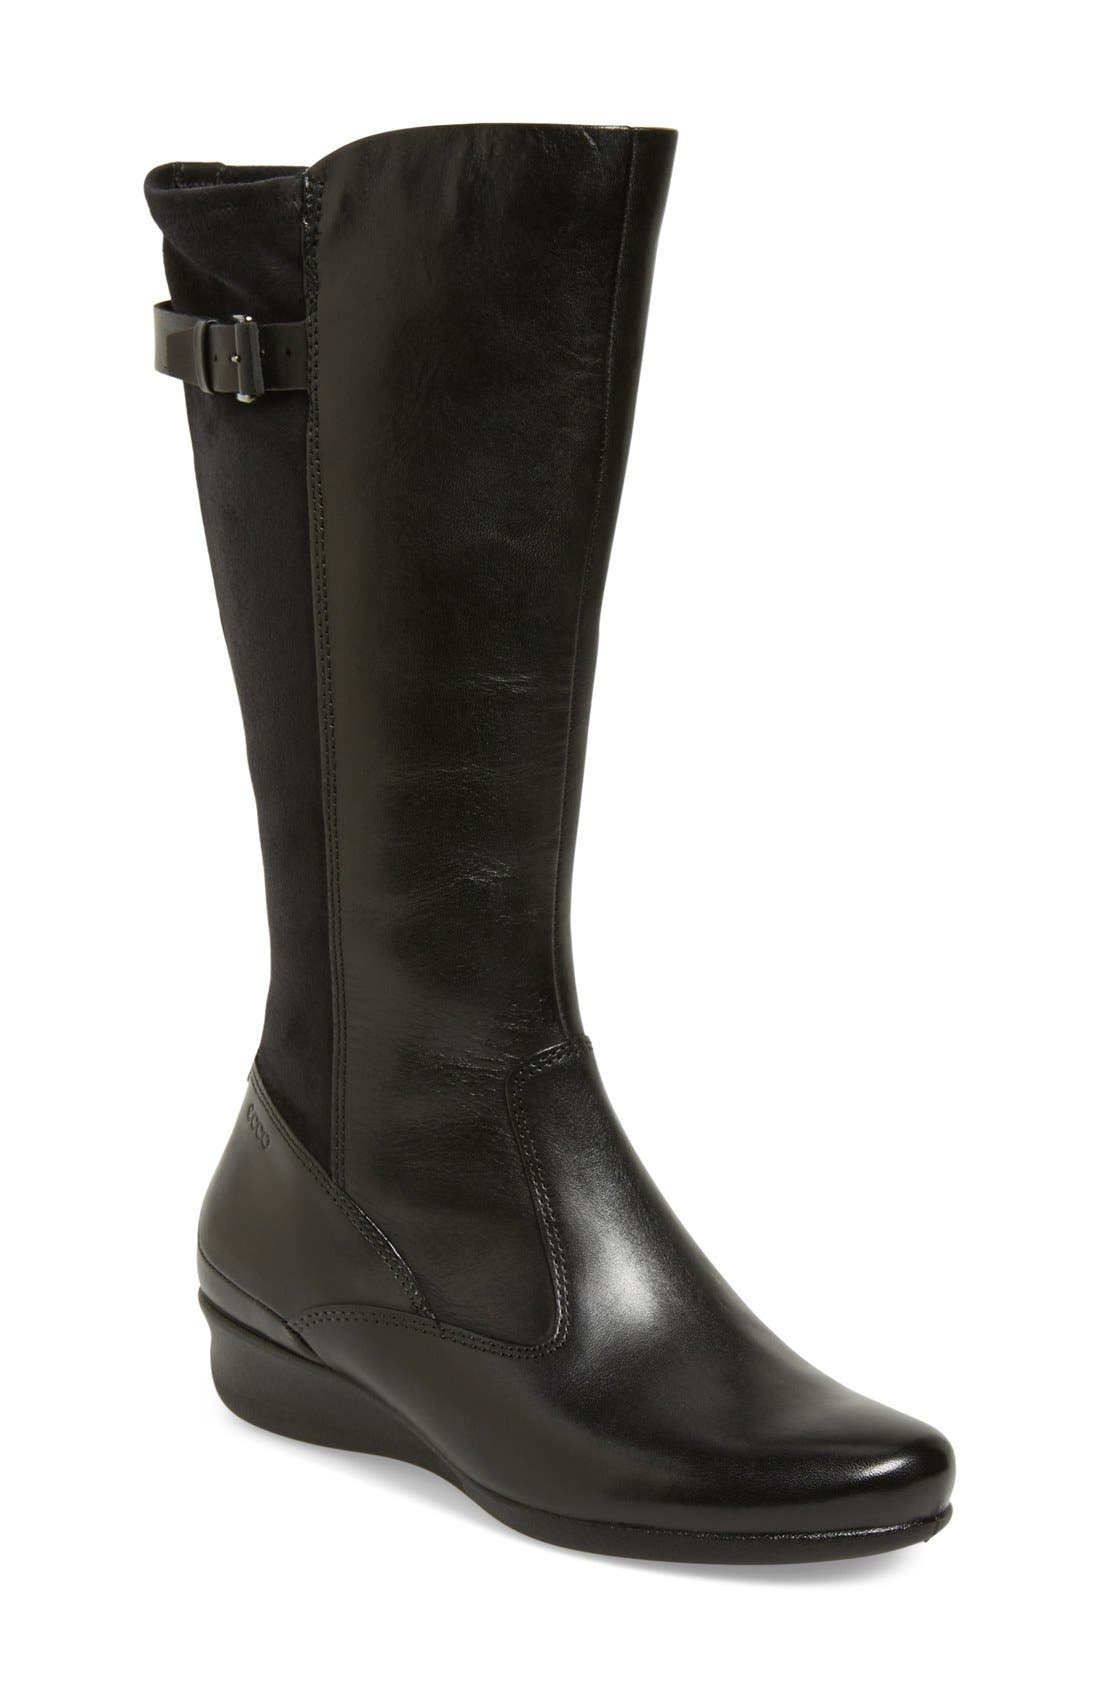 Women's Knee-High Boots, Boots for Women | Nordstrom